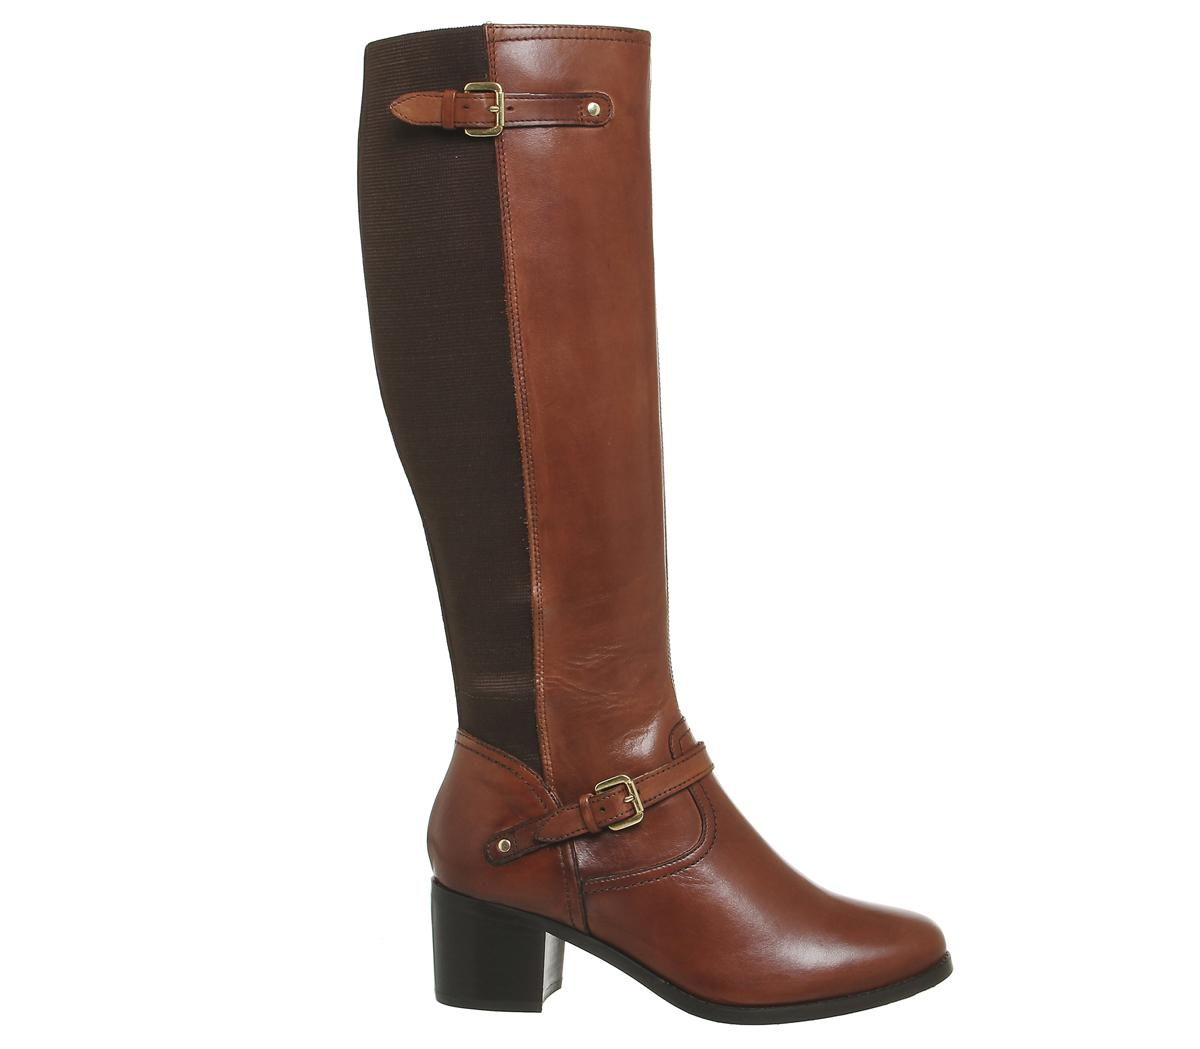 Office Leather Kennedy Mid Heel Riding Boots in Tan (Black)